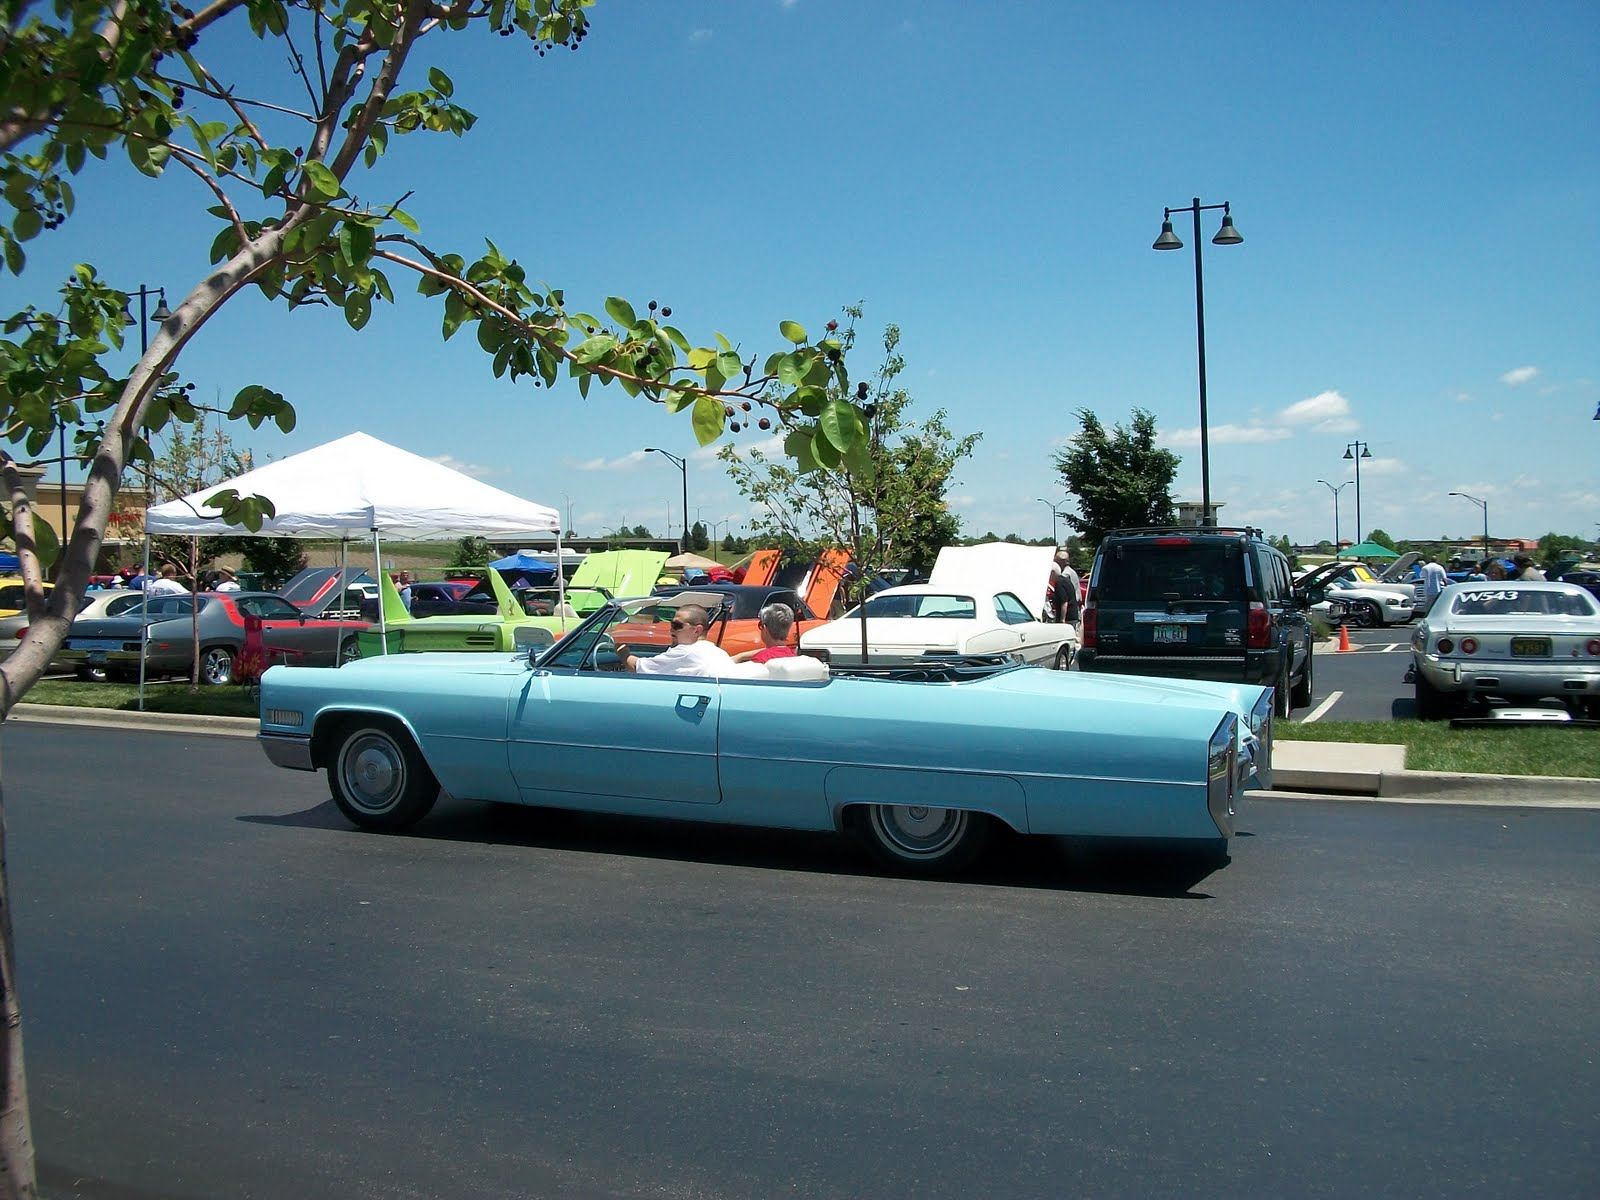 South Kansas City Observer: Antique and Classic Cars Abound on KC ...